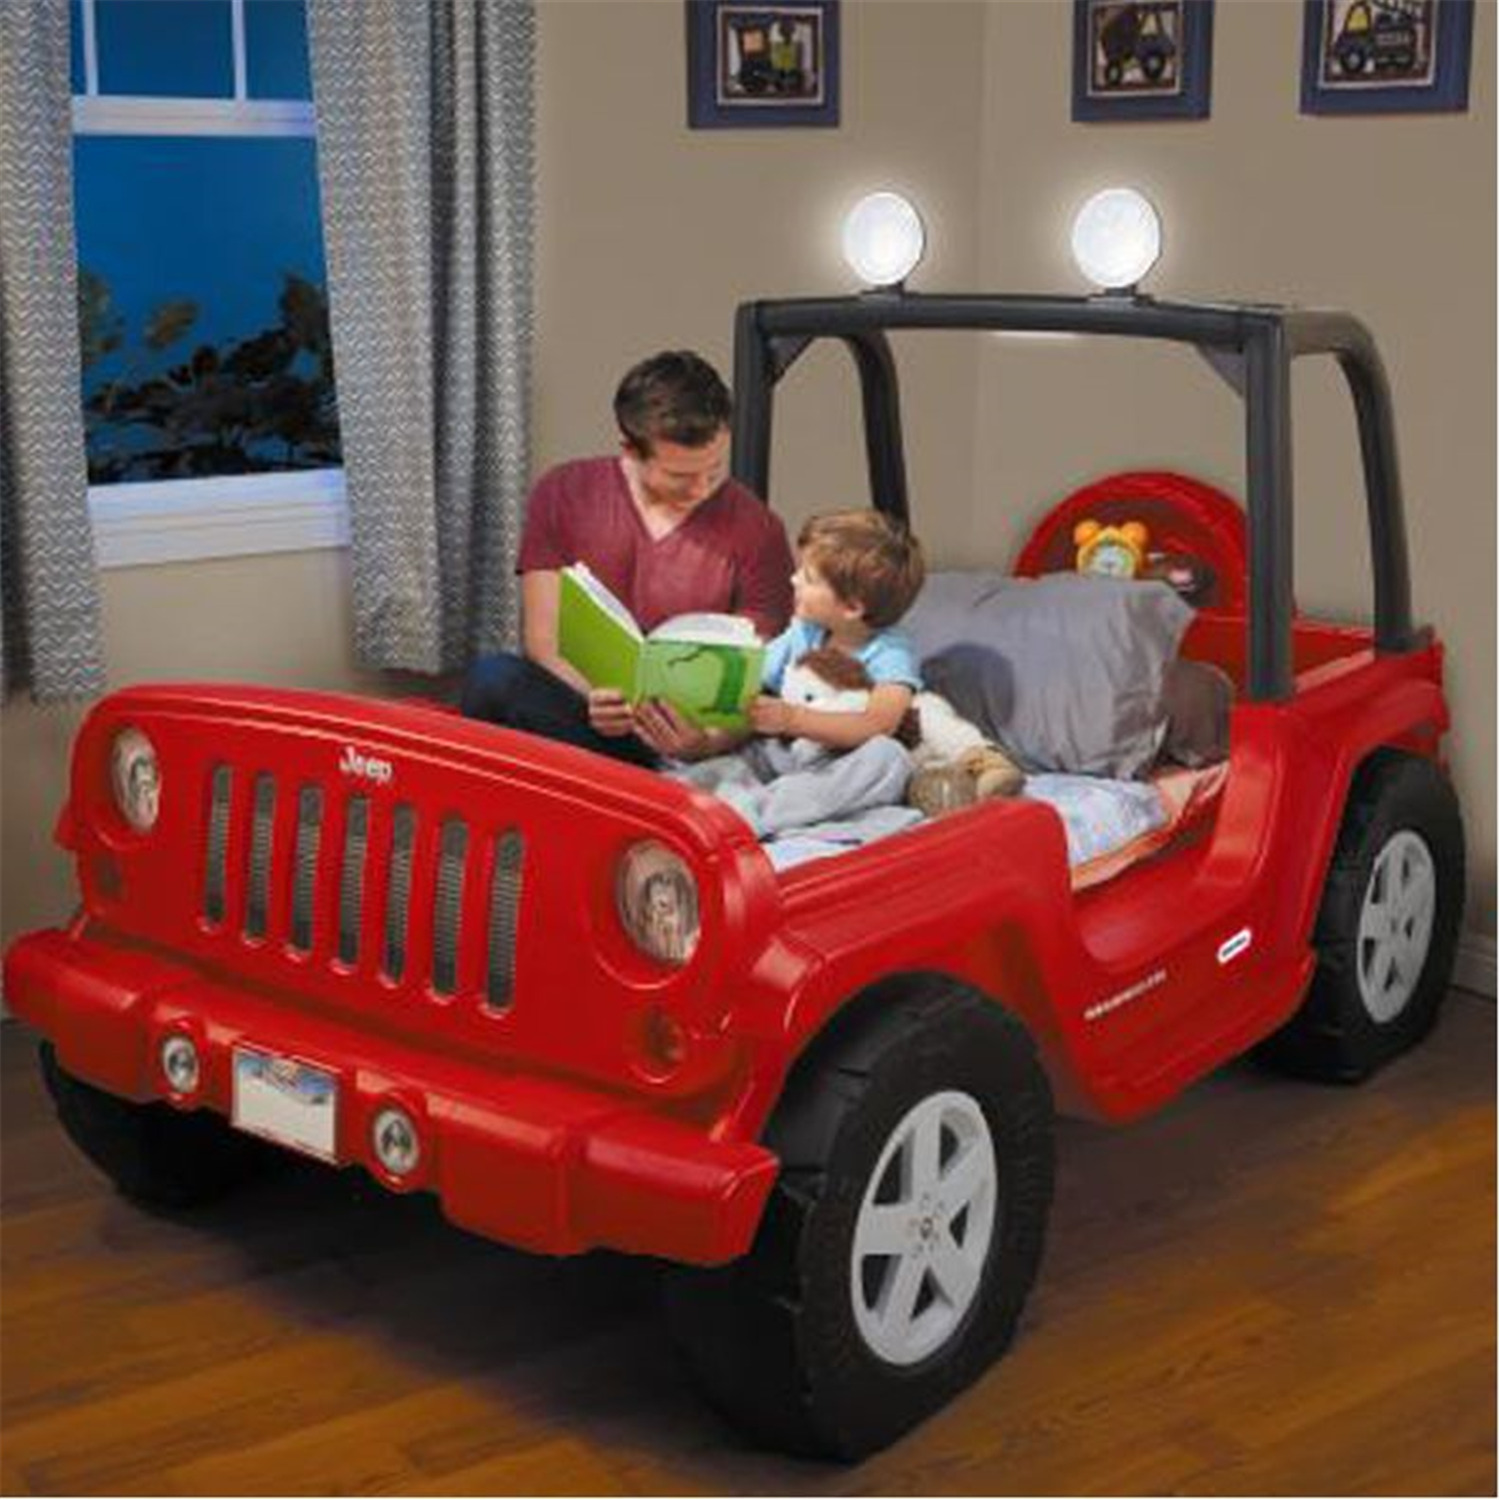 Little Tikes Jeep Wrangler Toddler To Twin Bed 480 40